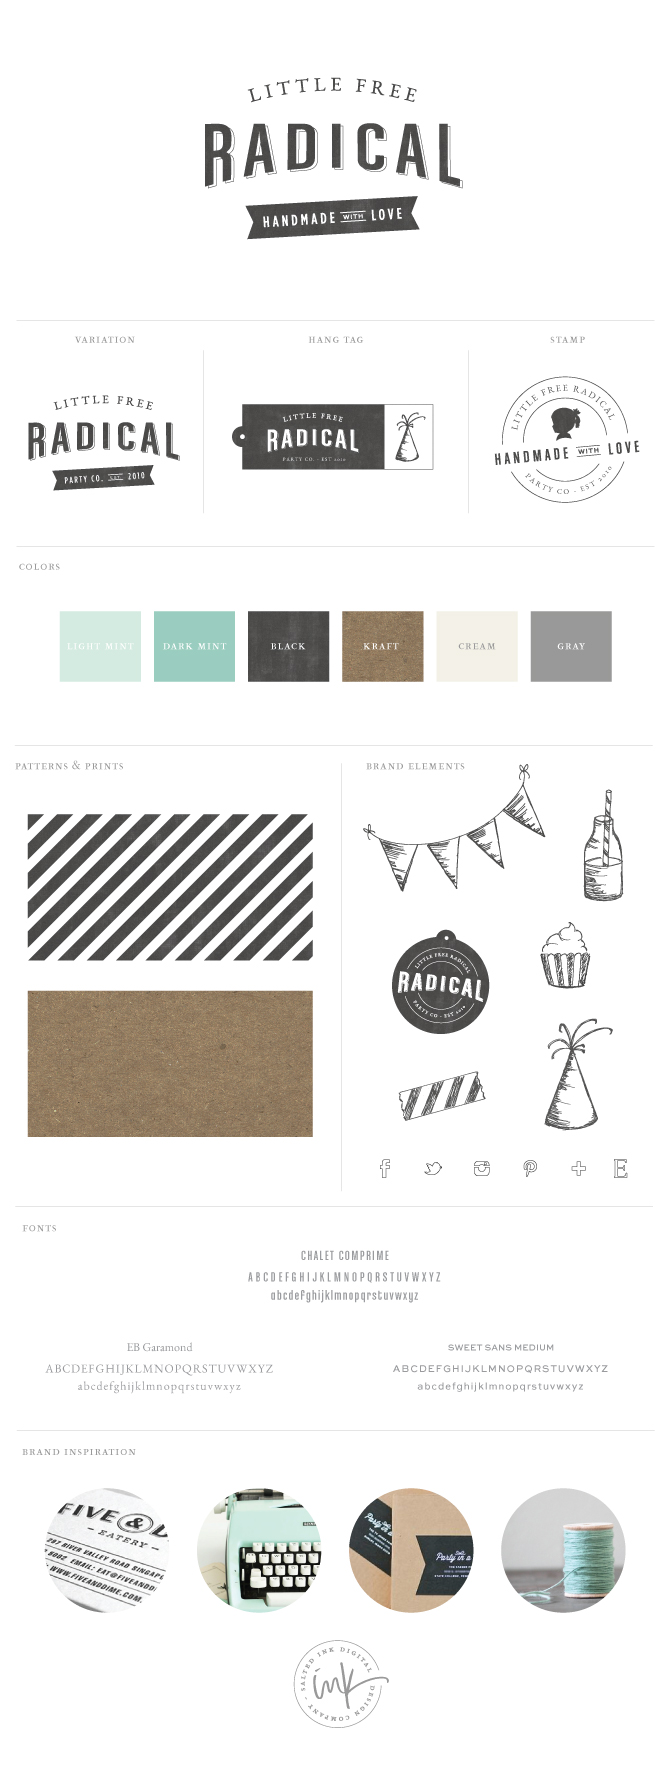 Brand Guidelines Templates Examples Tips For Consistent - Brand style guide template